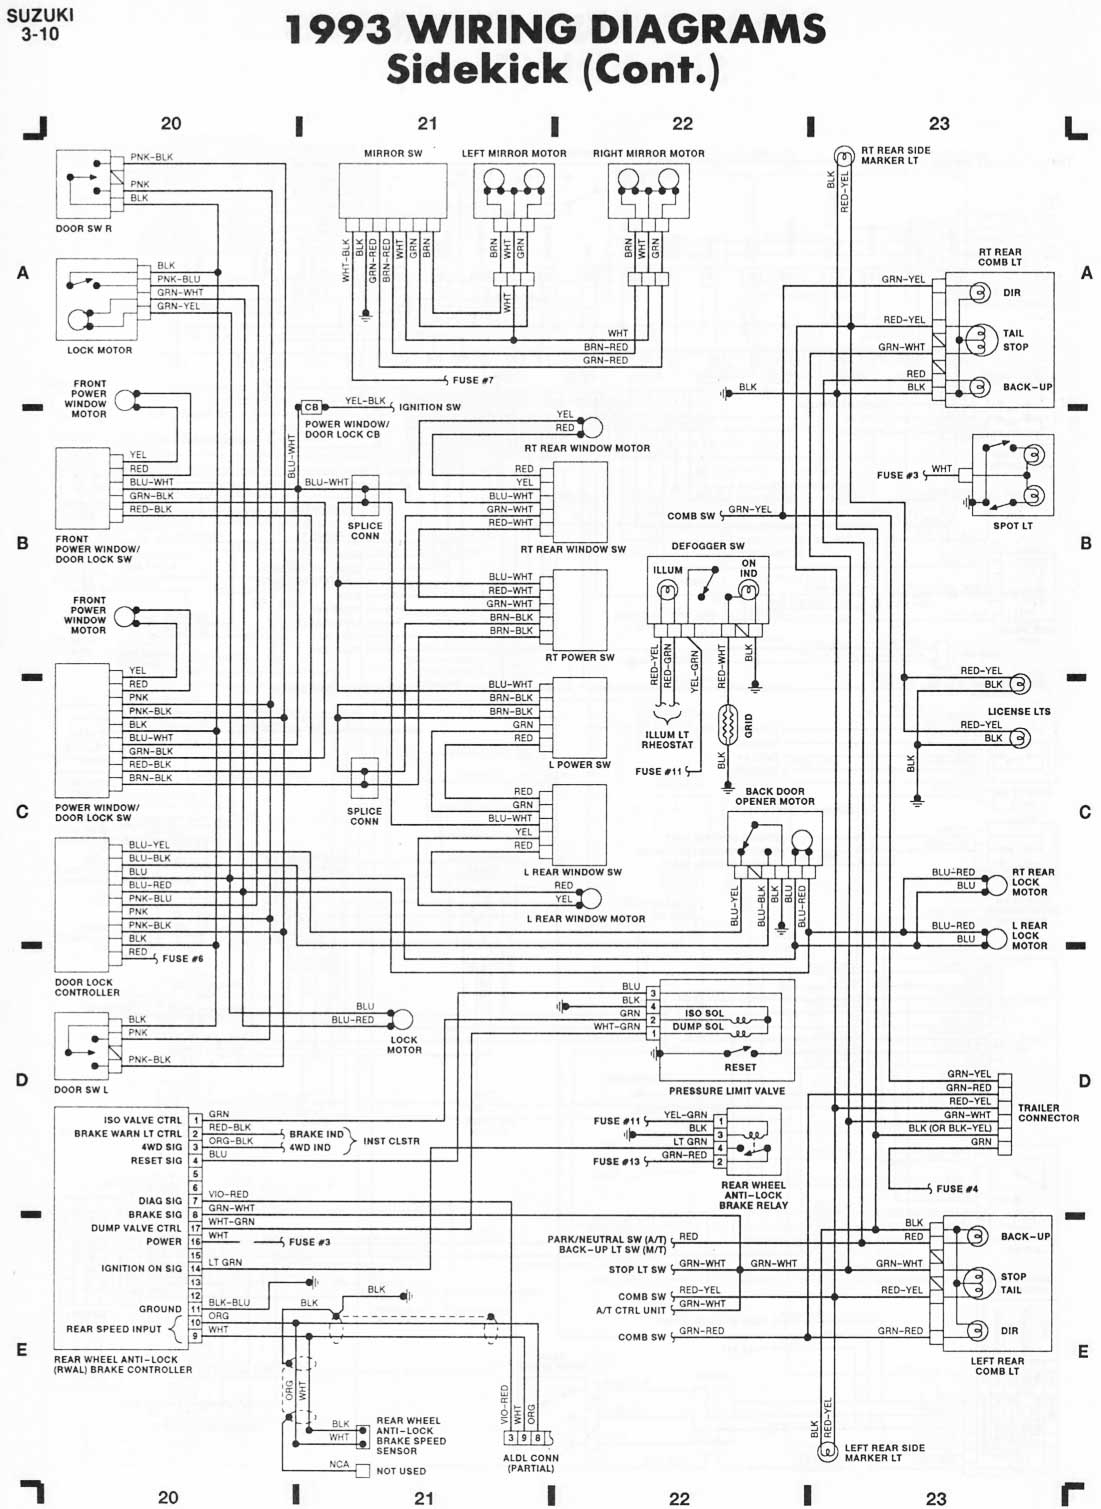 Sidekick on suzuki sidekick wiring diagram